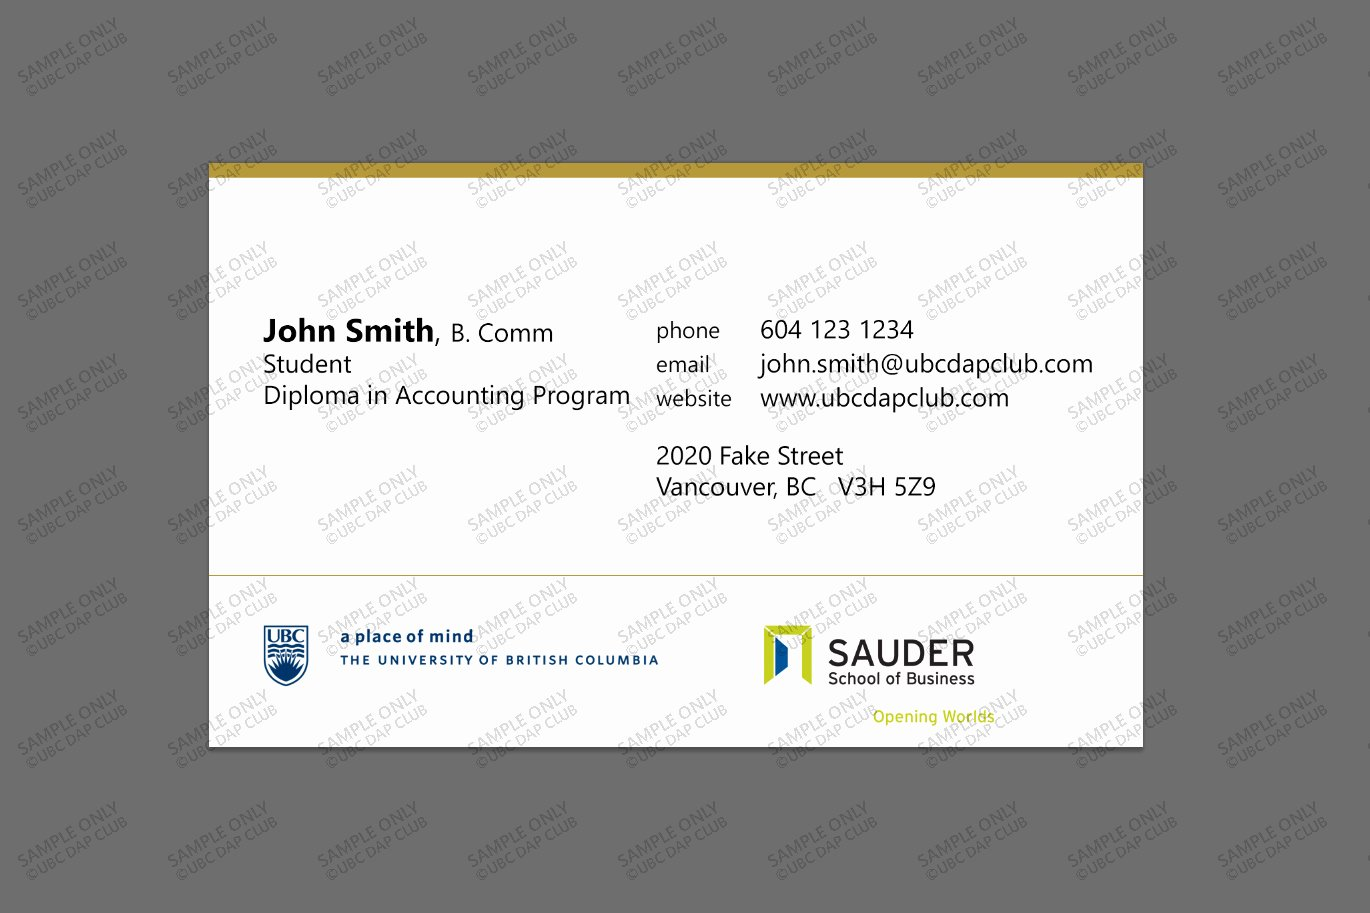 Networking Business Card Template Awesome Business Cards for Students Business Card Design